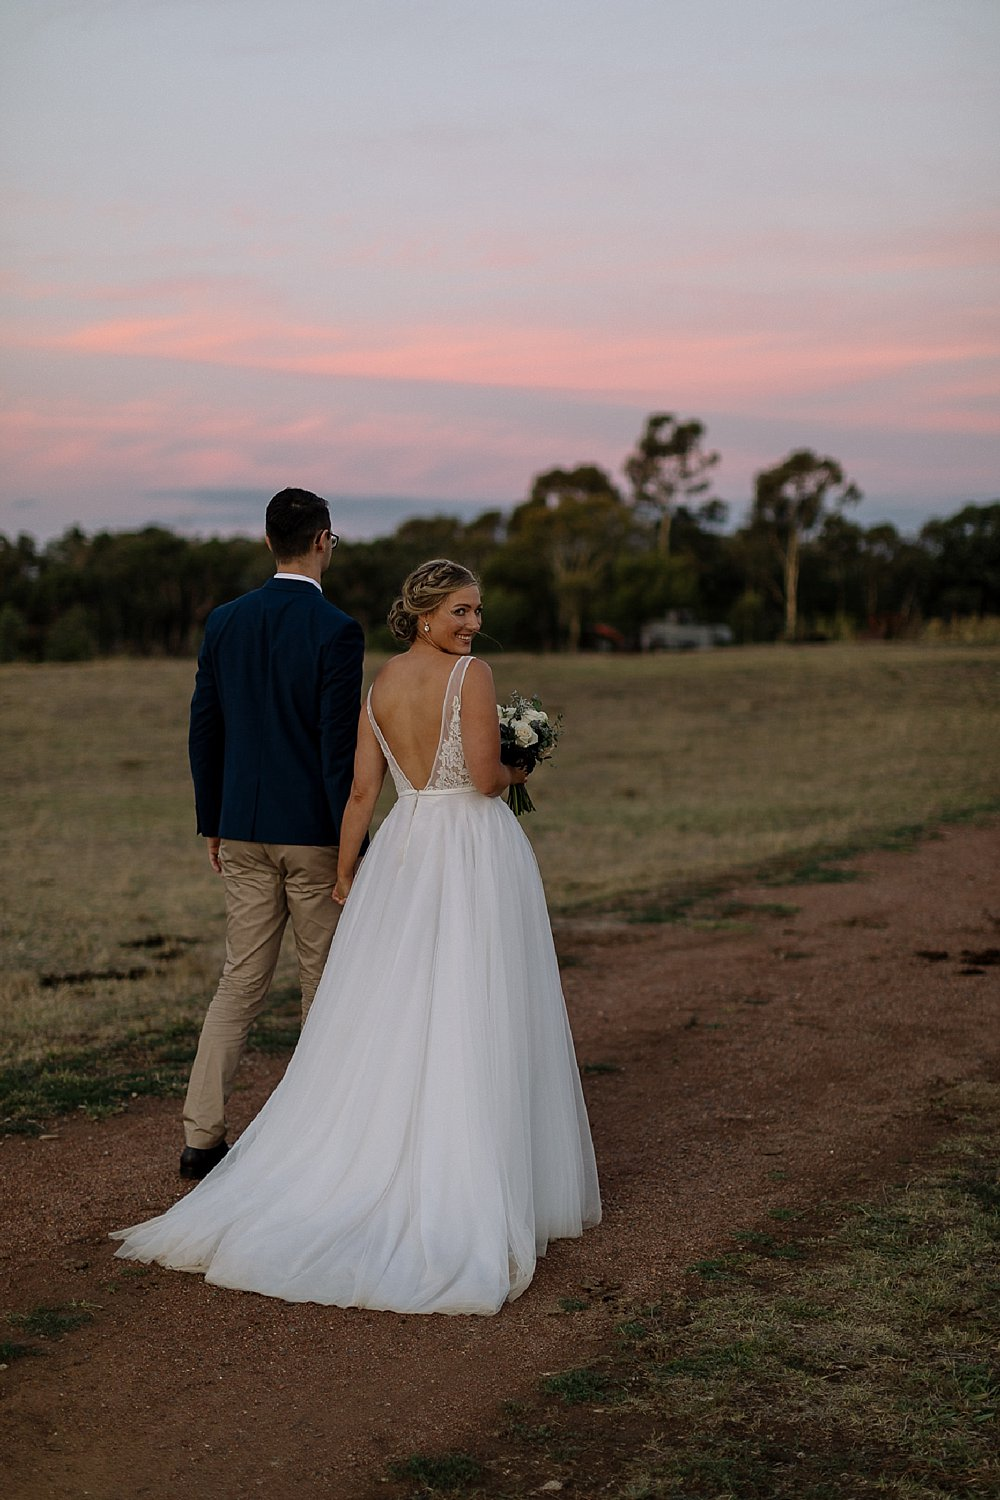 Canberra,Canberra Photography,Wedding,Keepsakephoto by the Keeffes,ACT wedding photographer,Canberra Wedding Photographer,Canberra Wedding Photography,canberra weddings,Tuggeranong Homestead,Wedding Inspiration,country wedding,Barn Wedding,Hay Field,Farm Wedding,